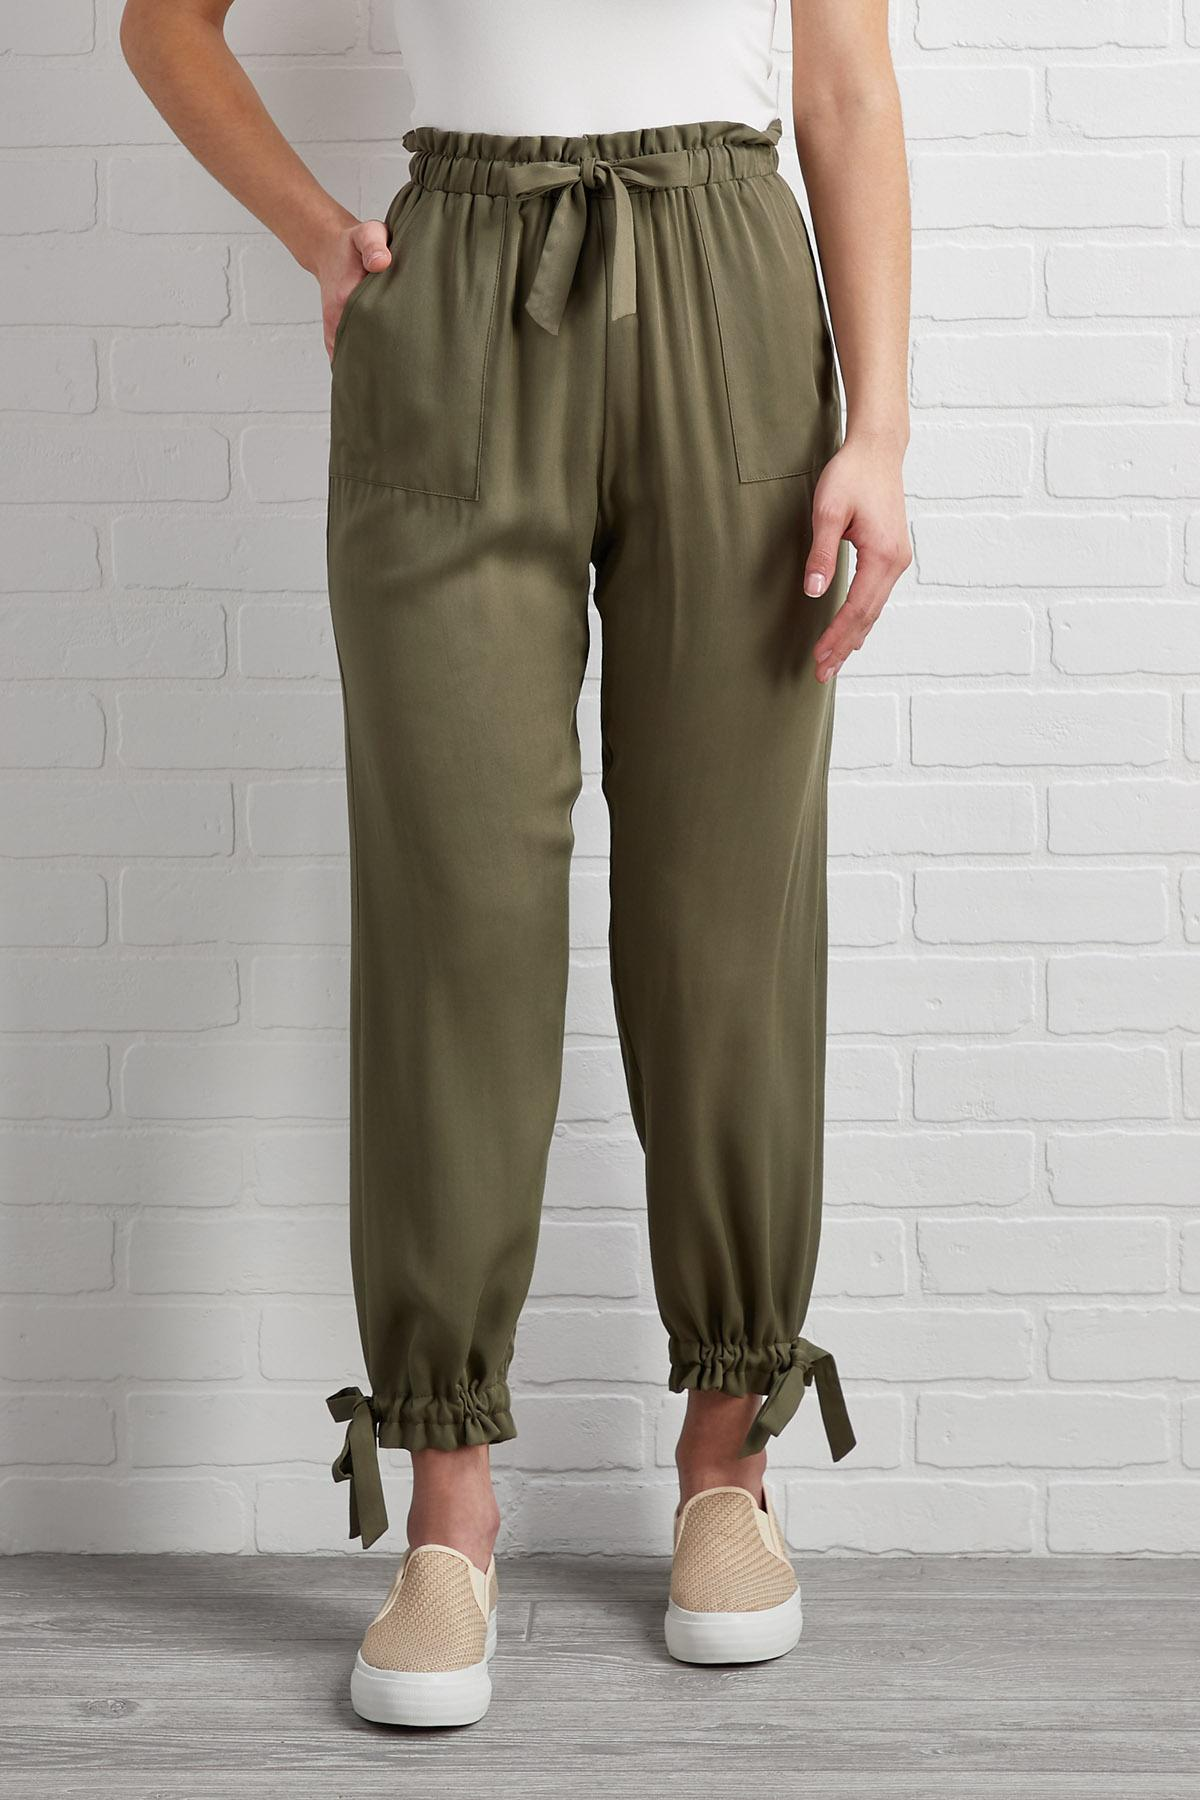 On The Bow Pants